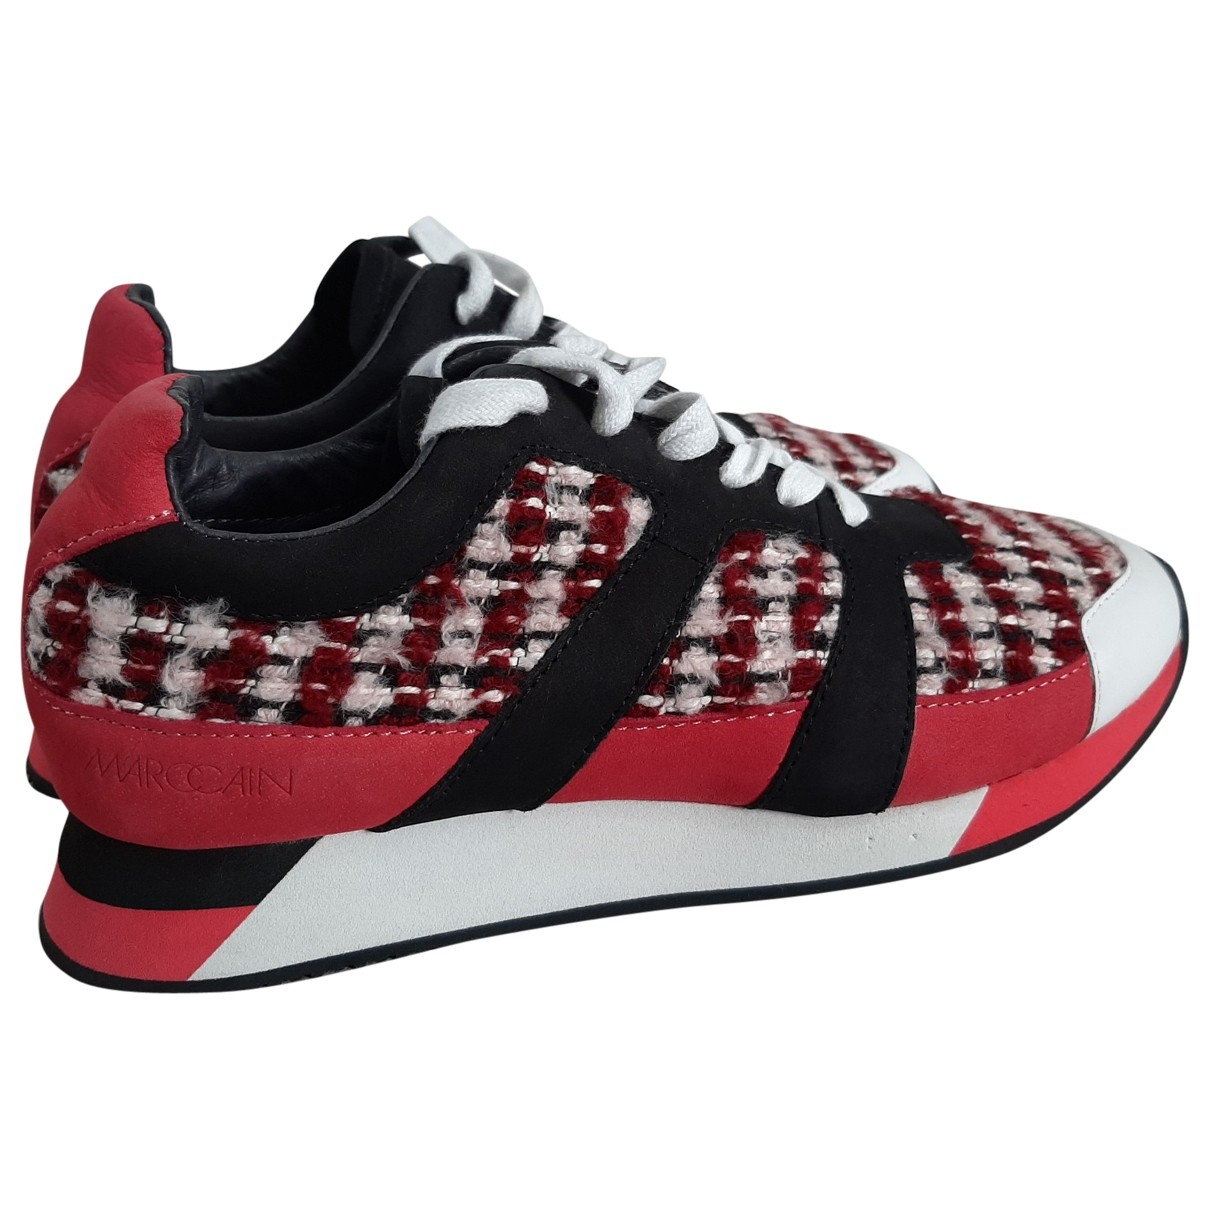 Marc Cain \N Sneakers in  Rot Leder